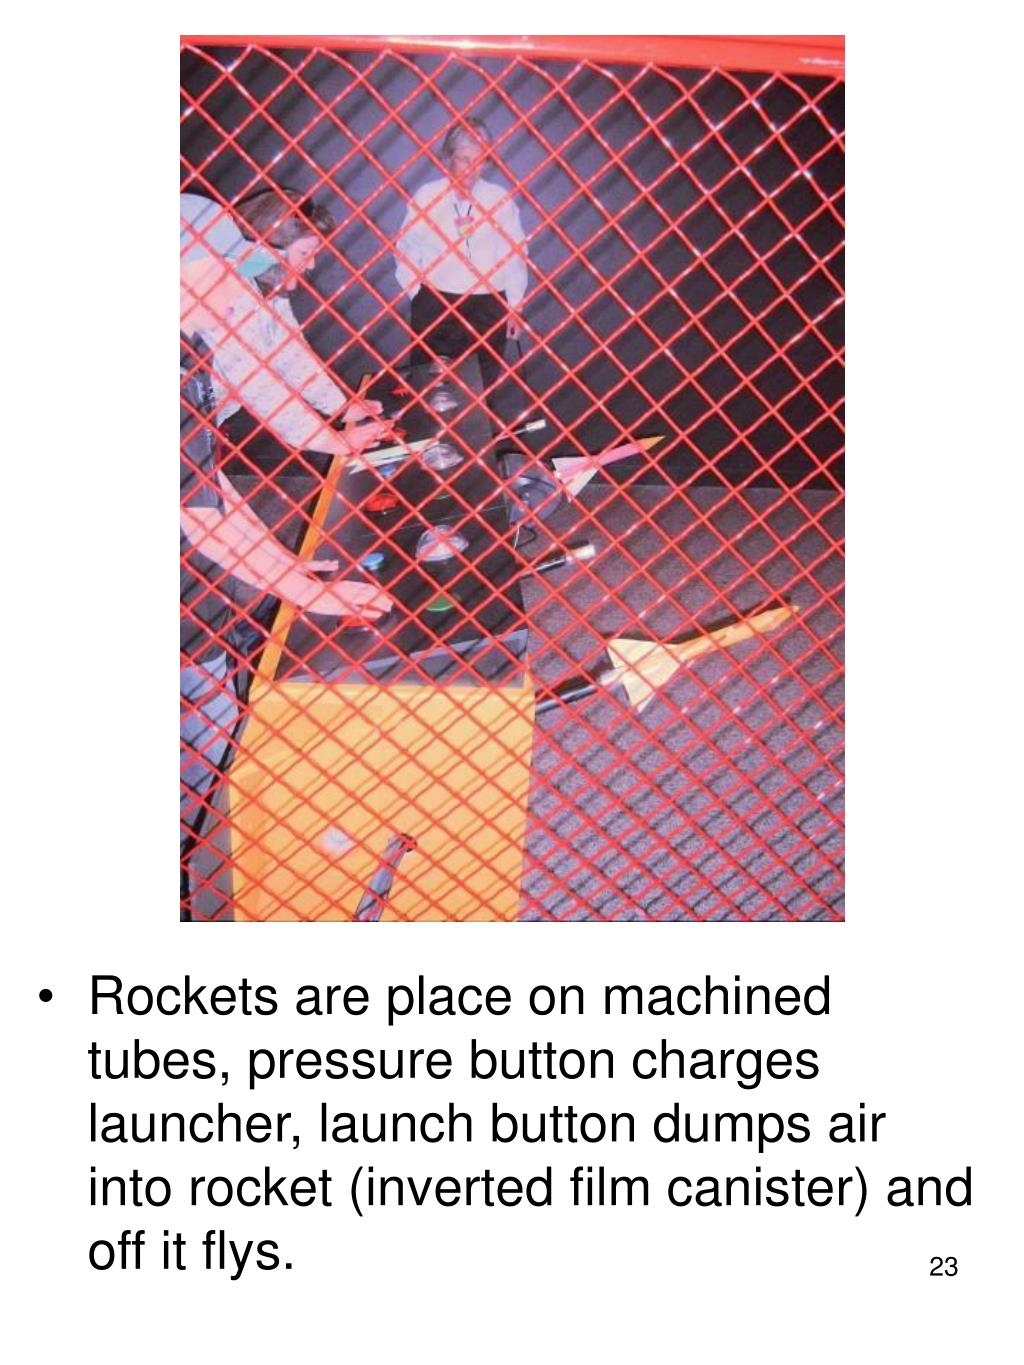 Rockets are place on machined tubes, pressure button charges launcher, launch button dumps air into rocket (inverted film canister) and off it flys.